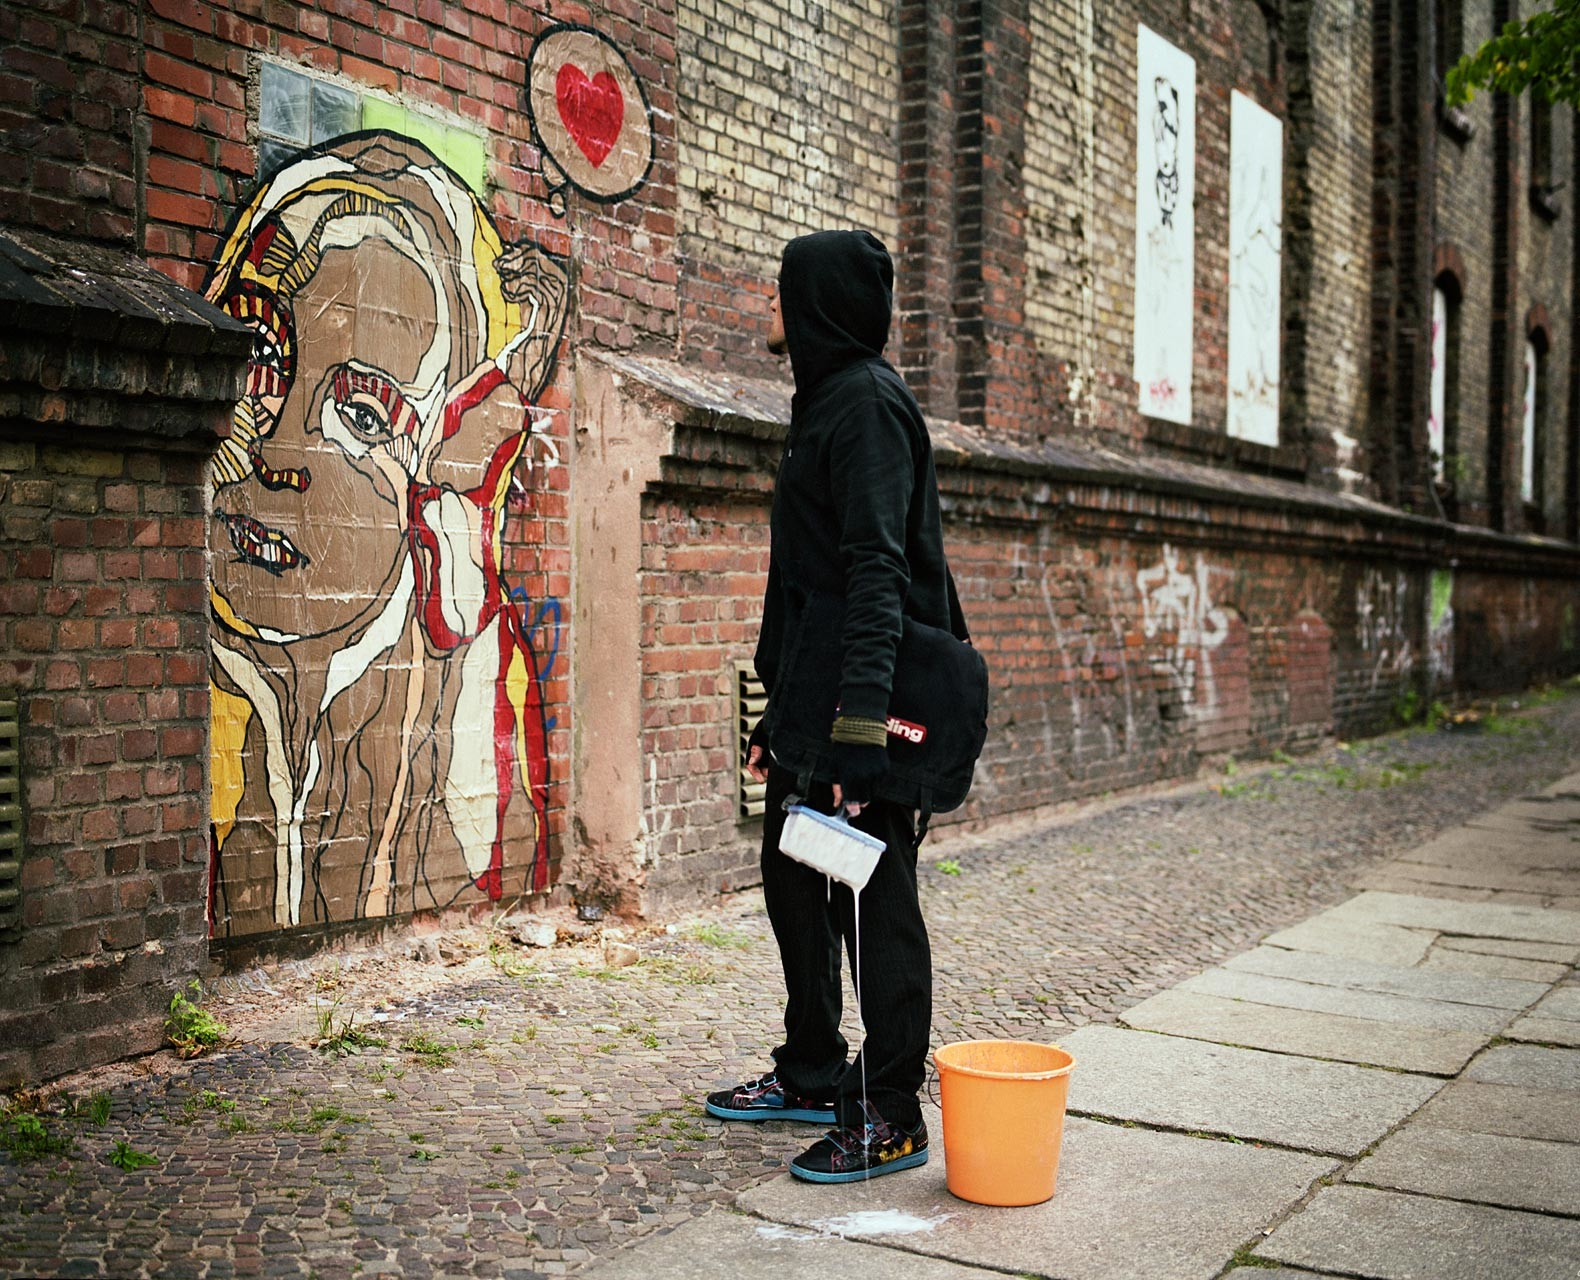 timo-stammberger-photography-berlin-el-bocho-artist-wheatpaste-love-street-art